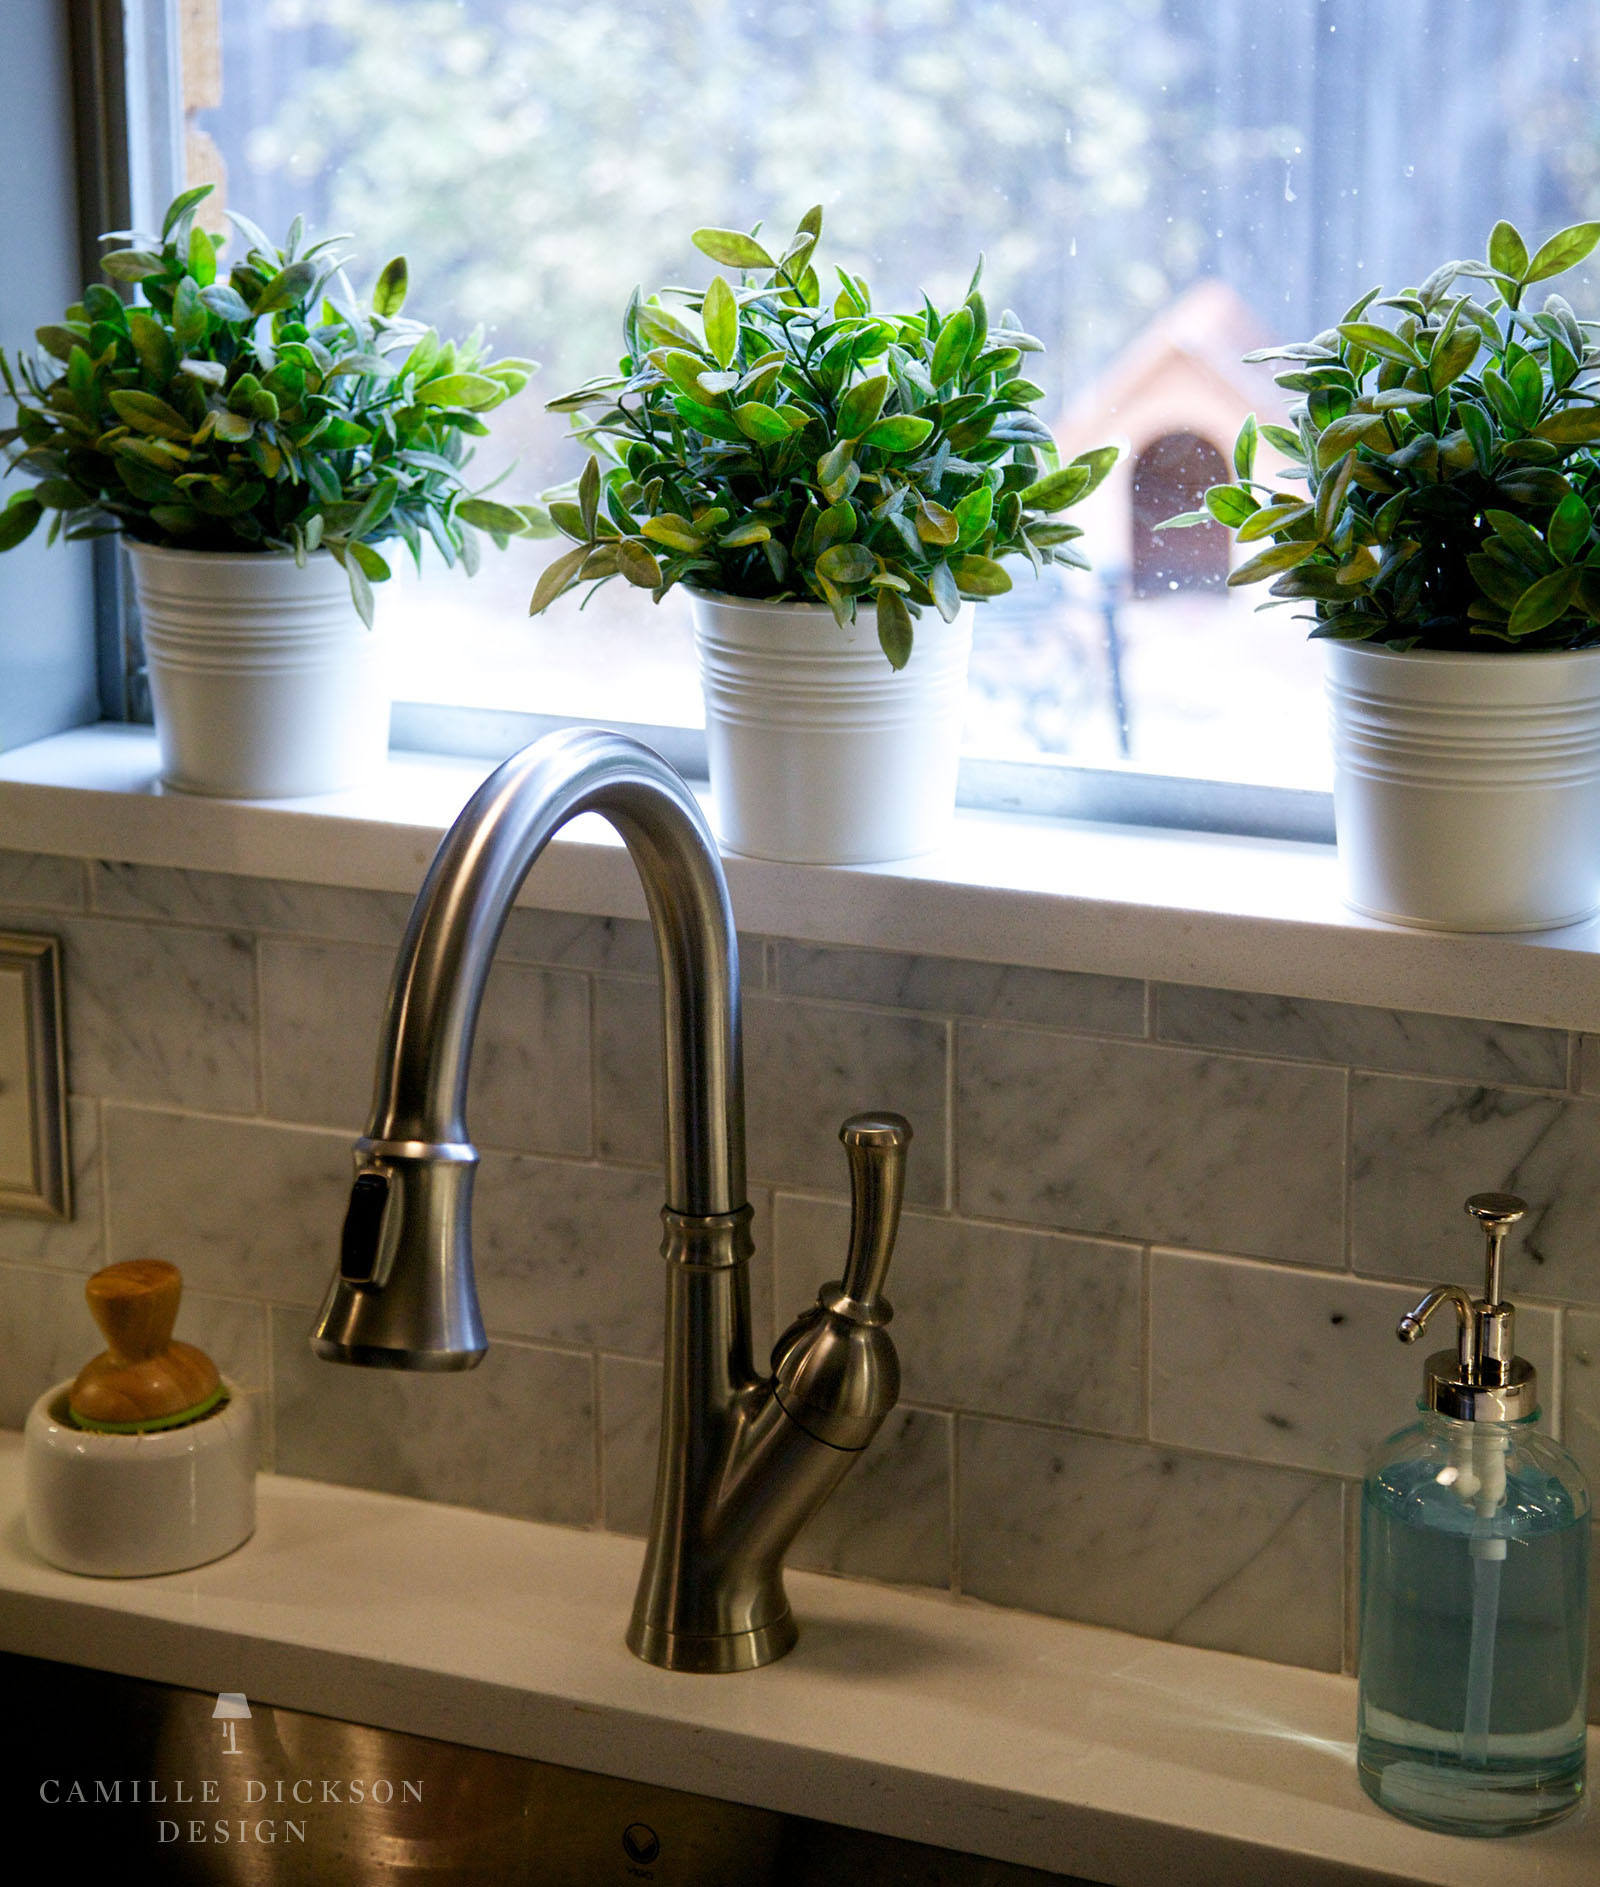 Beautiful Kitchen Window For Plants Of Christmas Sill Decorations